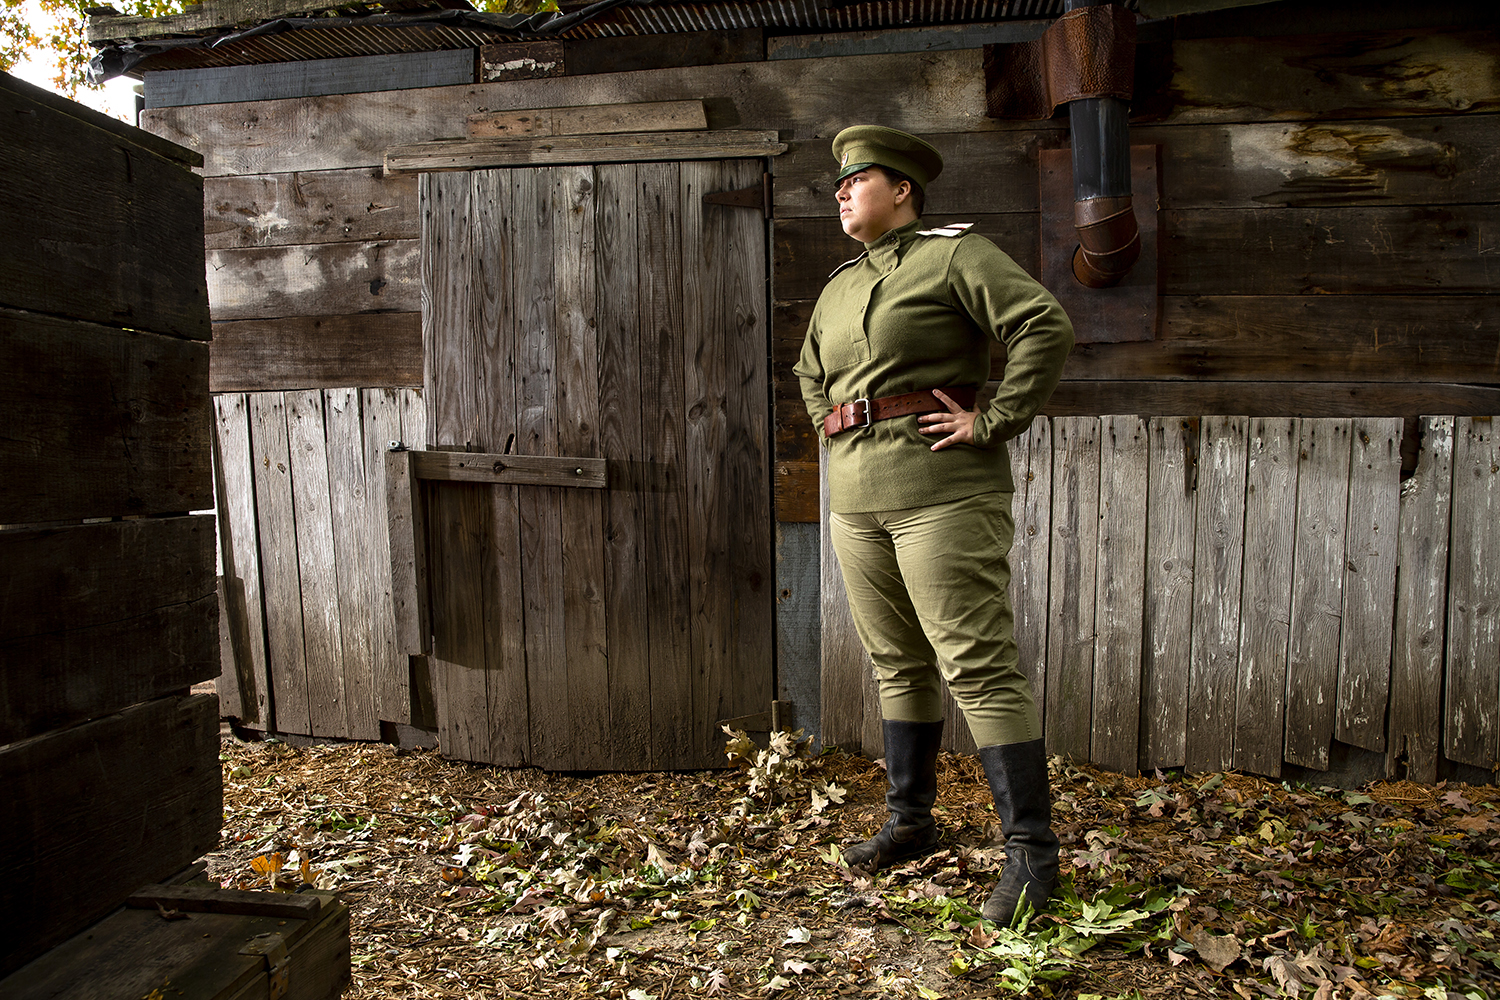 As a re-enactor and volunteer at the Illinois Military Museum, Lizzie Roehrs portrays a member of the First Russian Women's Battalion of Death, which fought during World War I. Roehrs was  photographed Thursday, Oct. 25, 2018 at the Illinois Military Museum at Camp Lincoln in Springfield, Ill. [Rich Saal/The State Journal-Register]